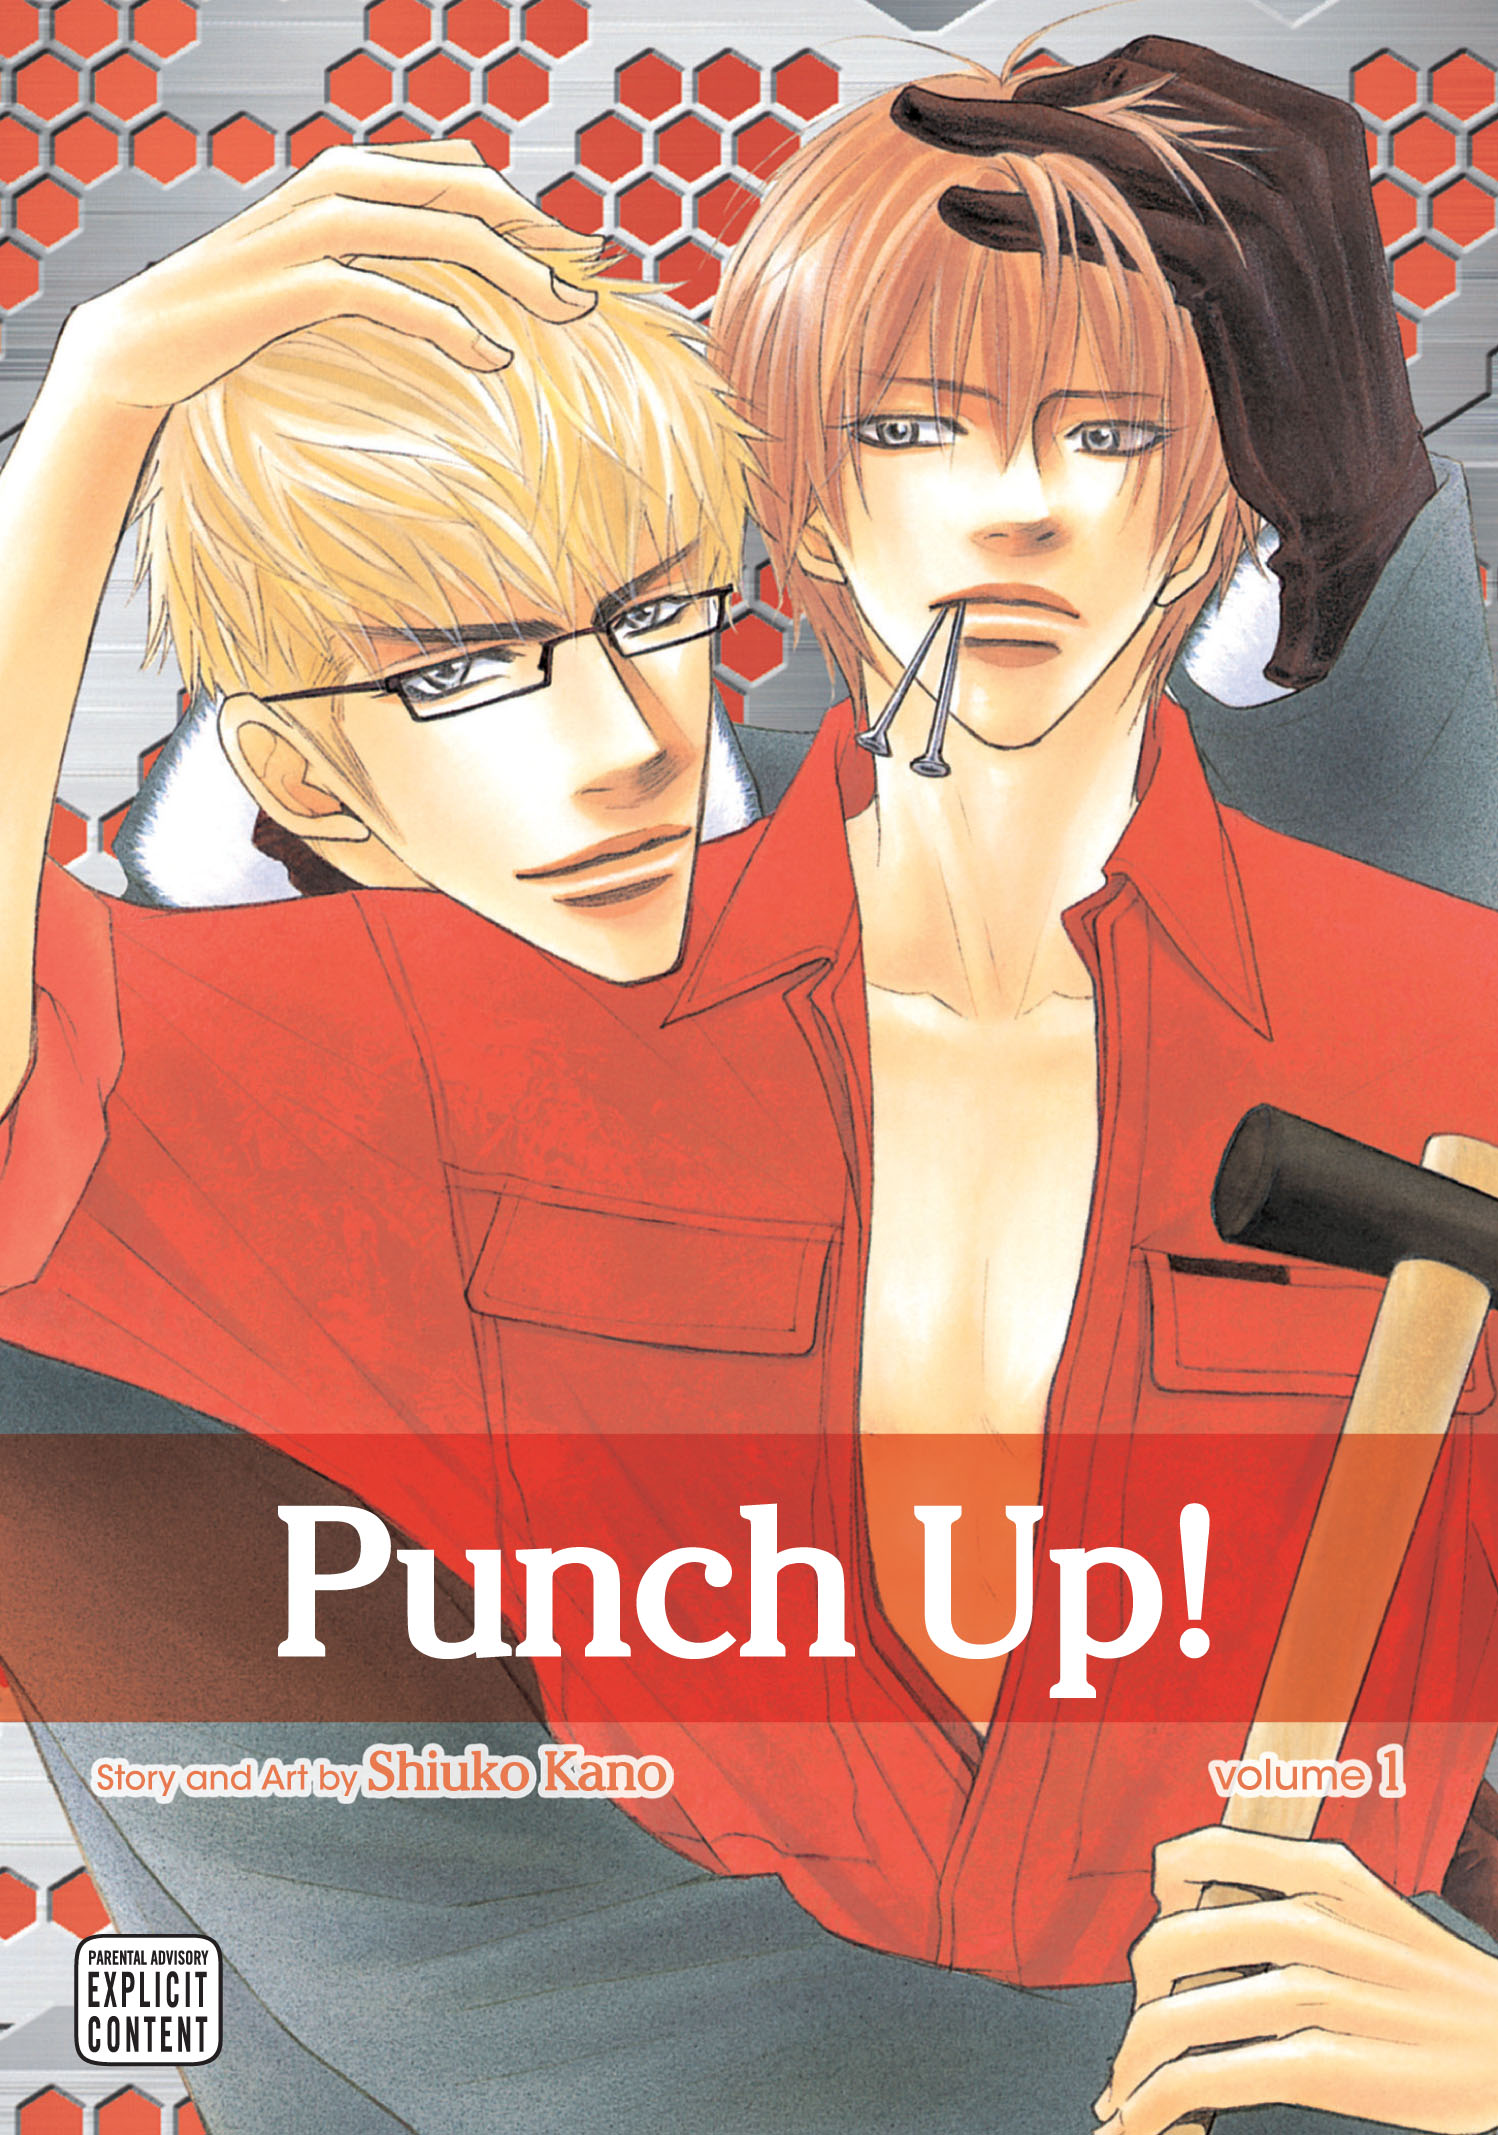 Punch Up! Vol. 1: Punch Up! V1